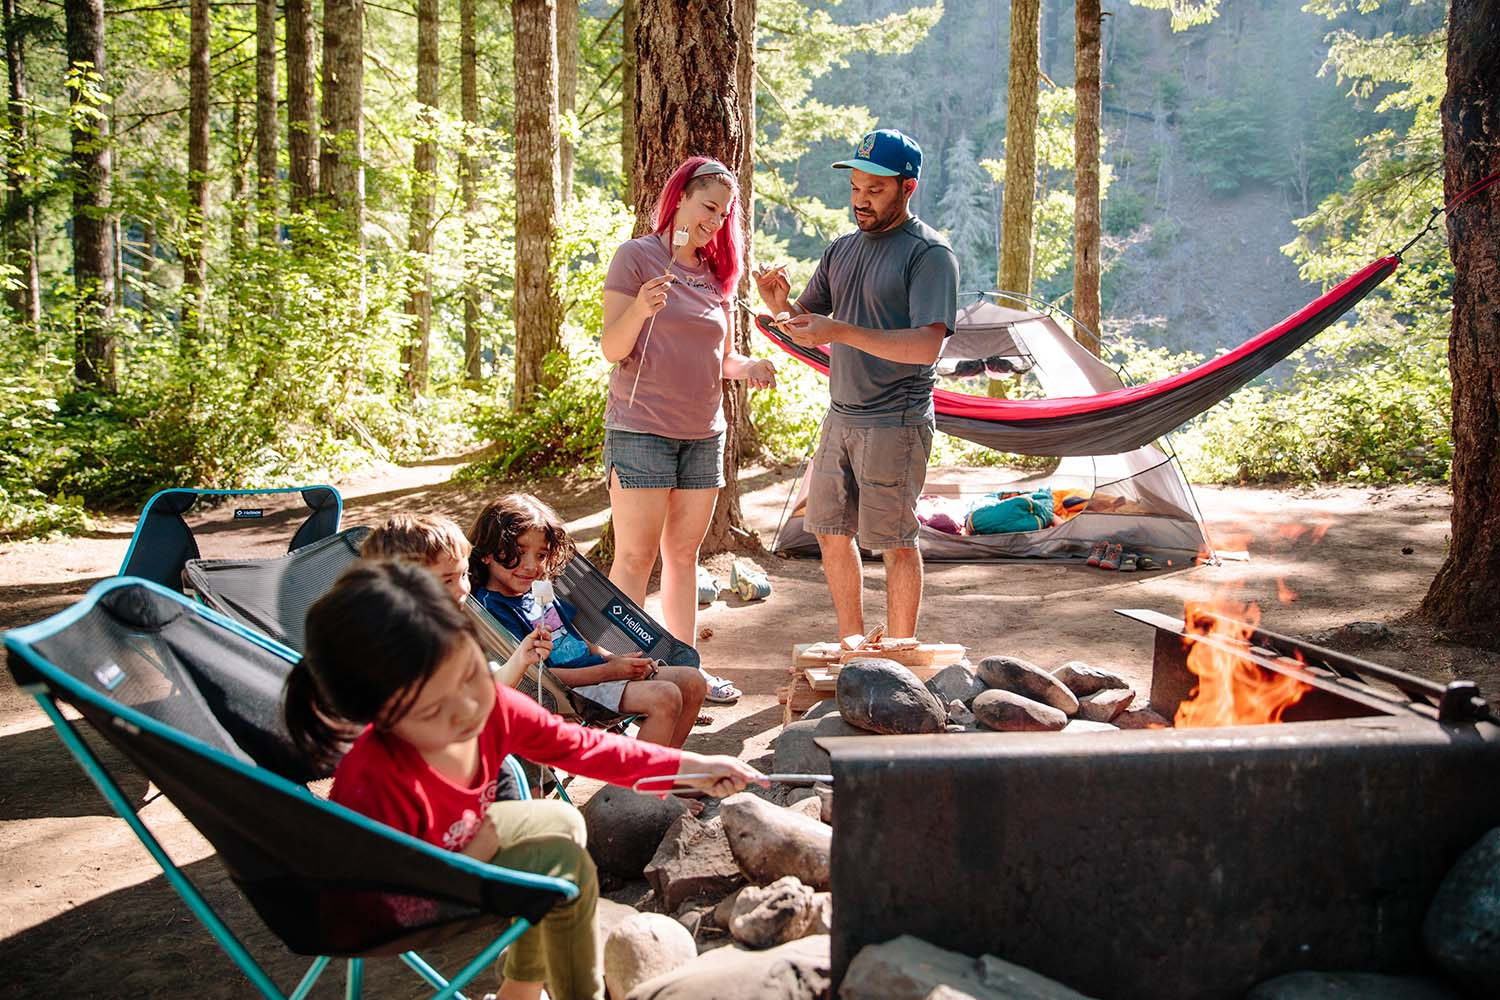 Six Benefits of Renting Camping Gear for Your Next Family Camping Trip